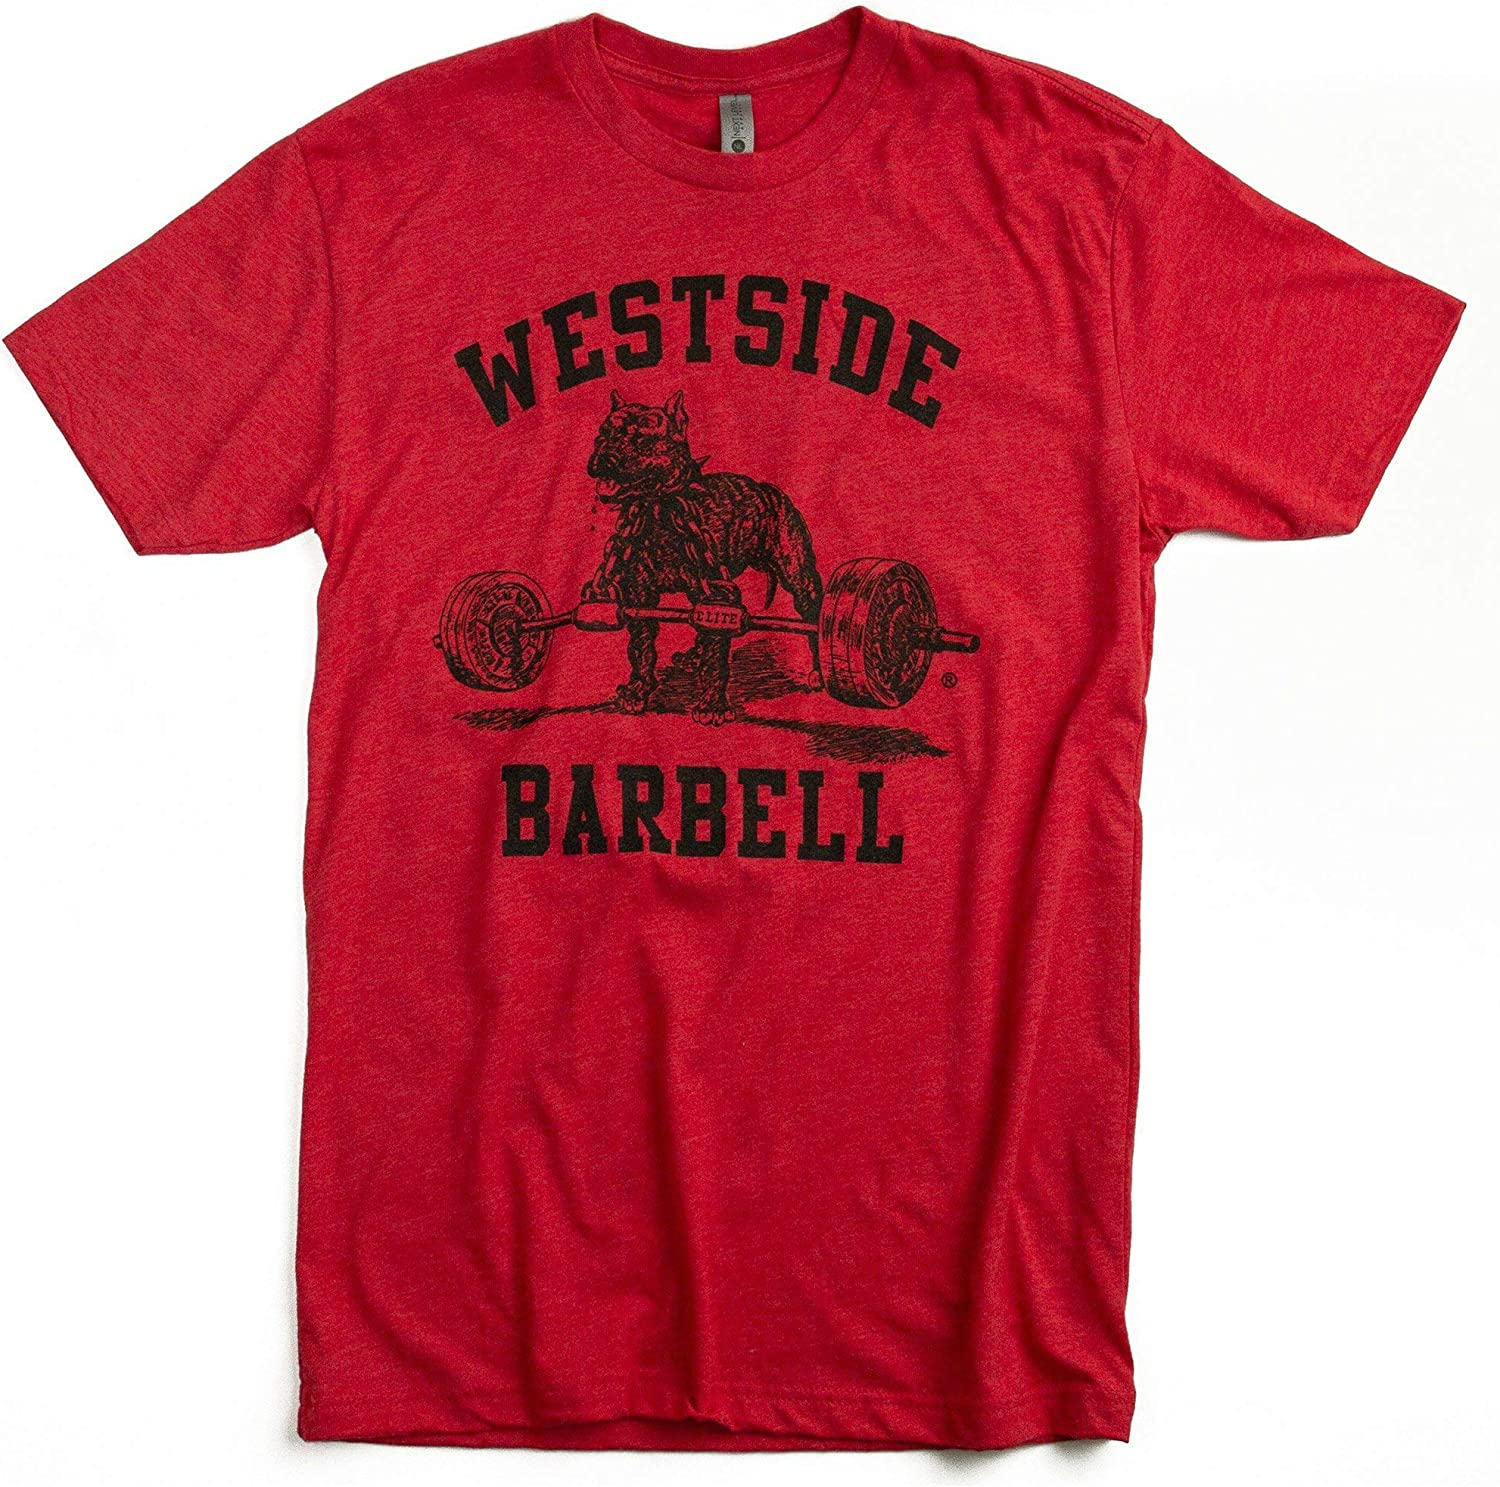 Selling and selling Large special price !! Westside barbell Classic Gym T-Shirt